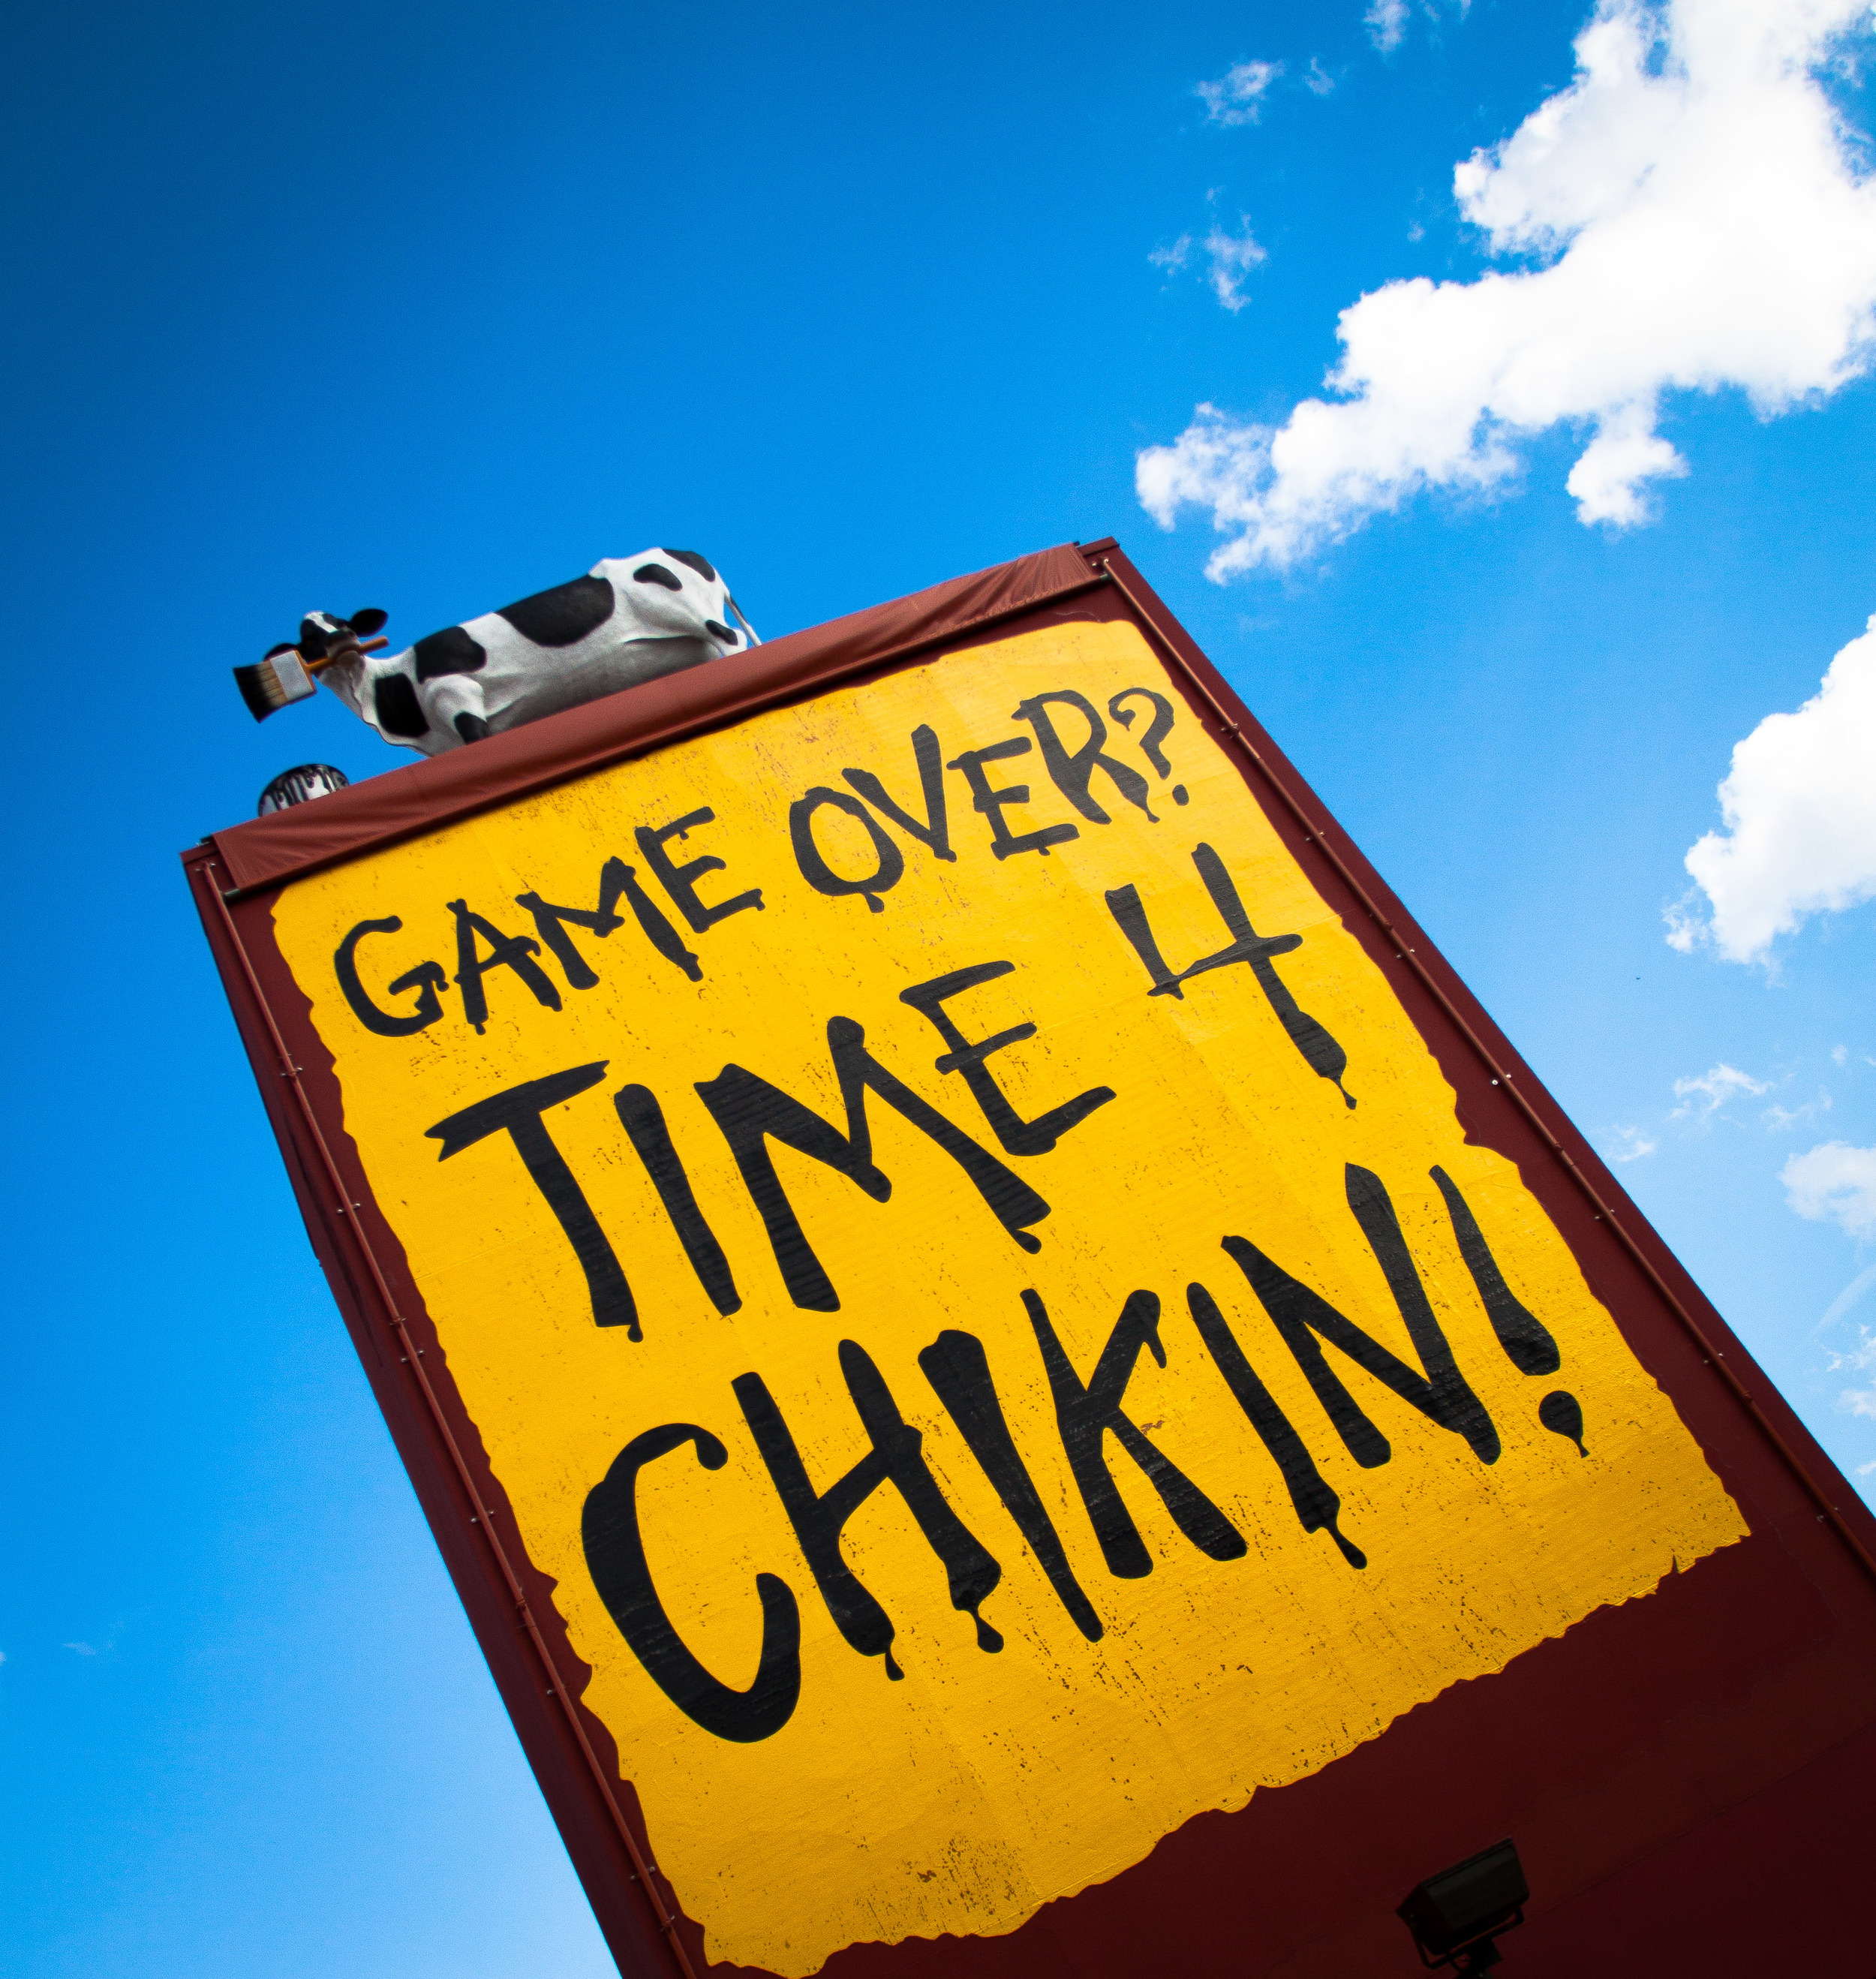 This Chic-Fil-A advertisement was outside of the Georgia Dome during the Week 6 match up of the Bears vs Falcons